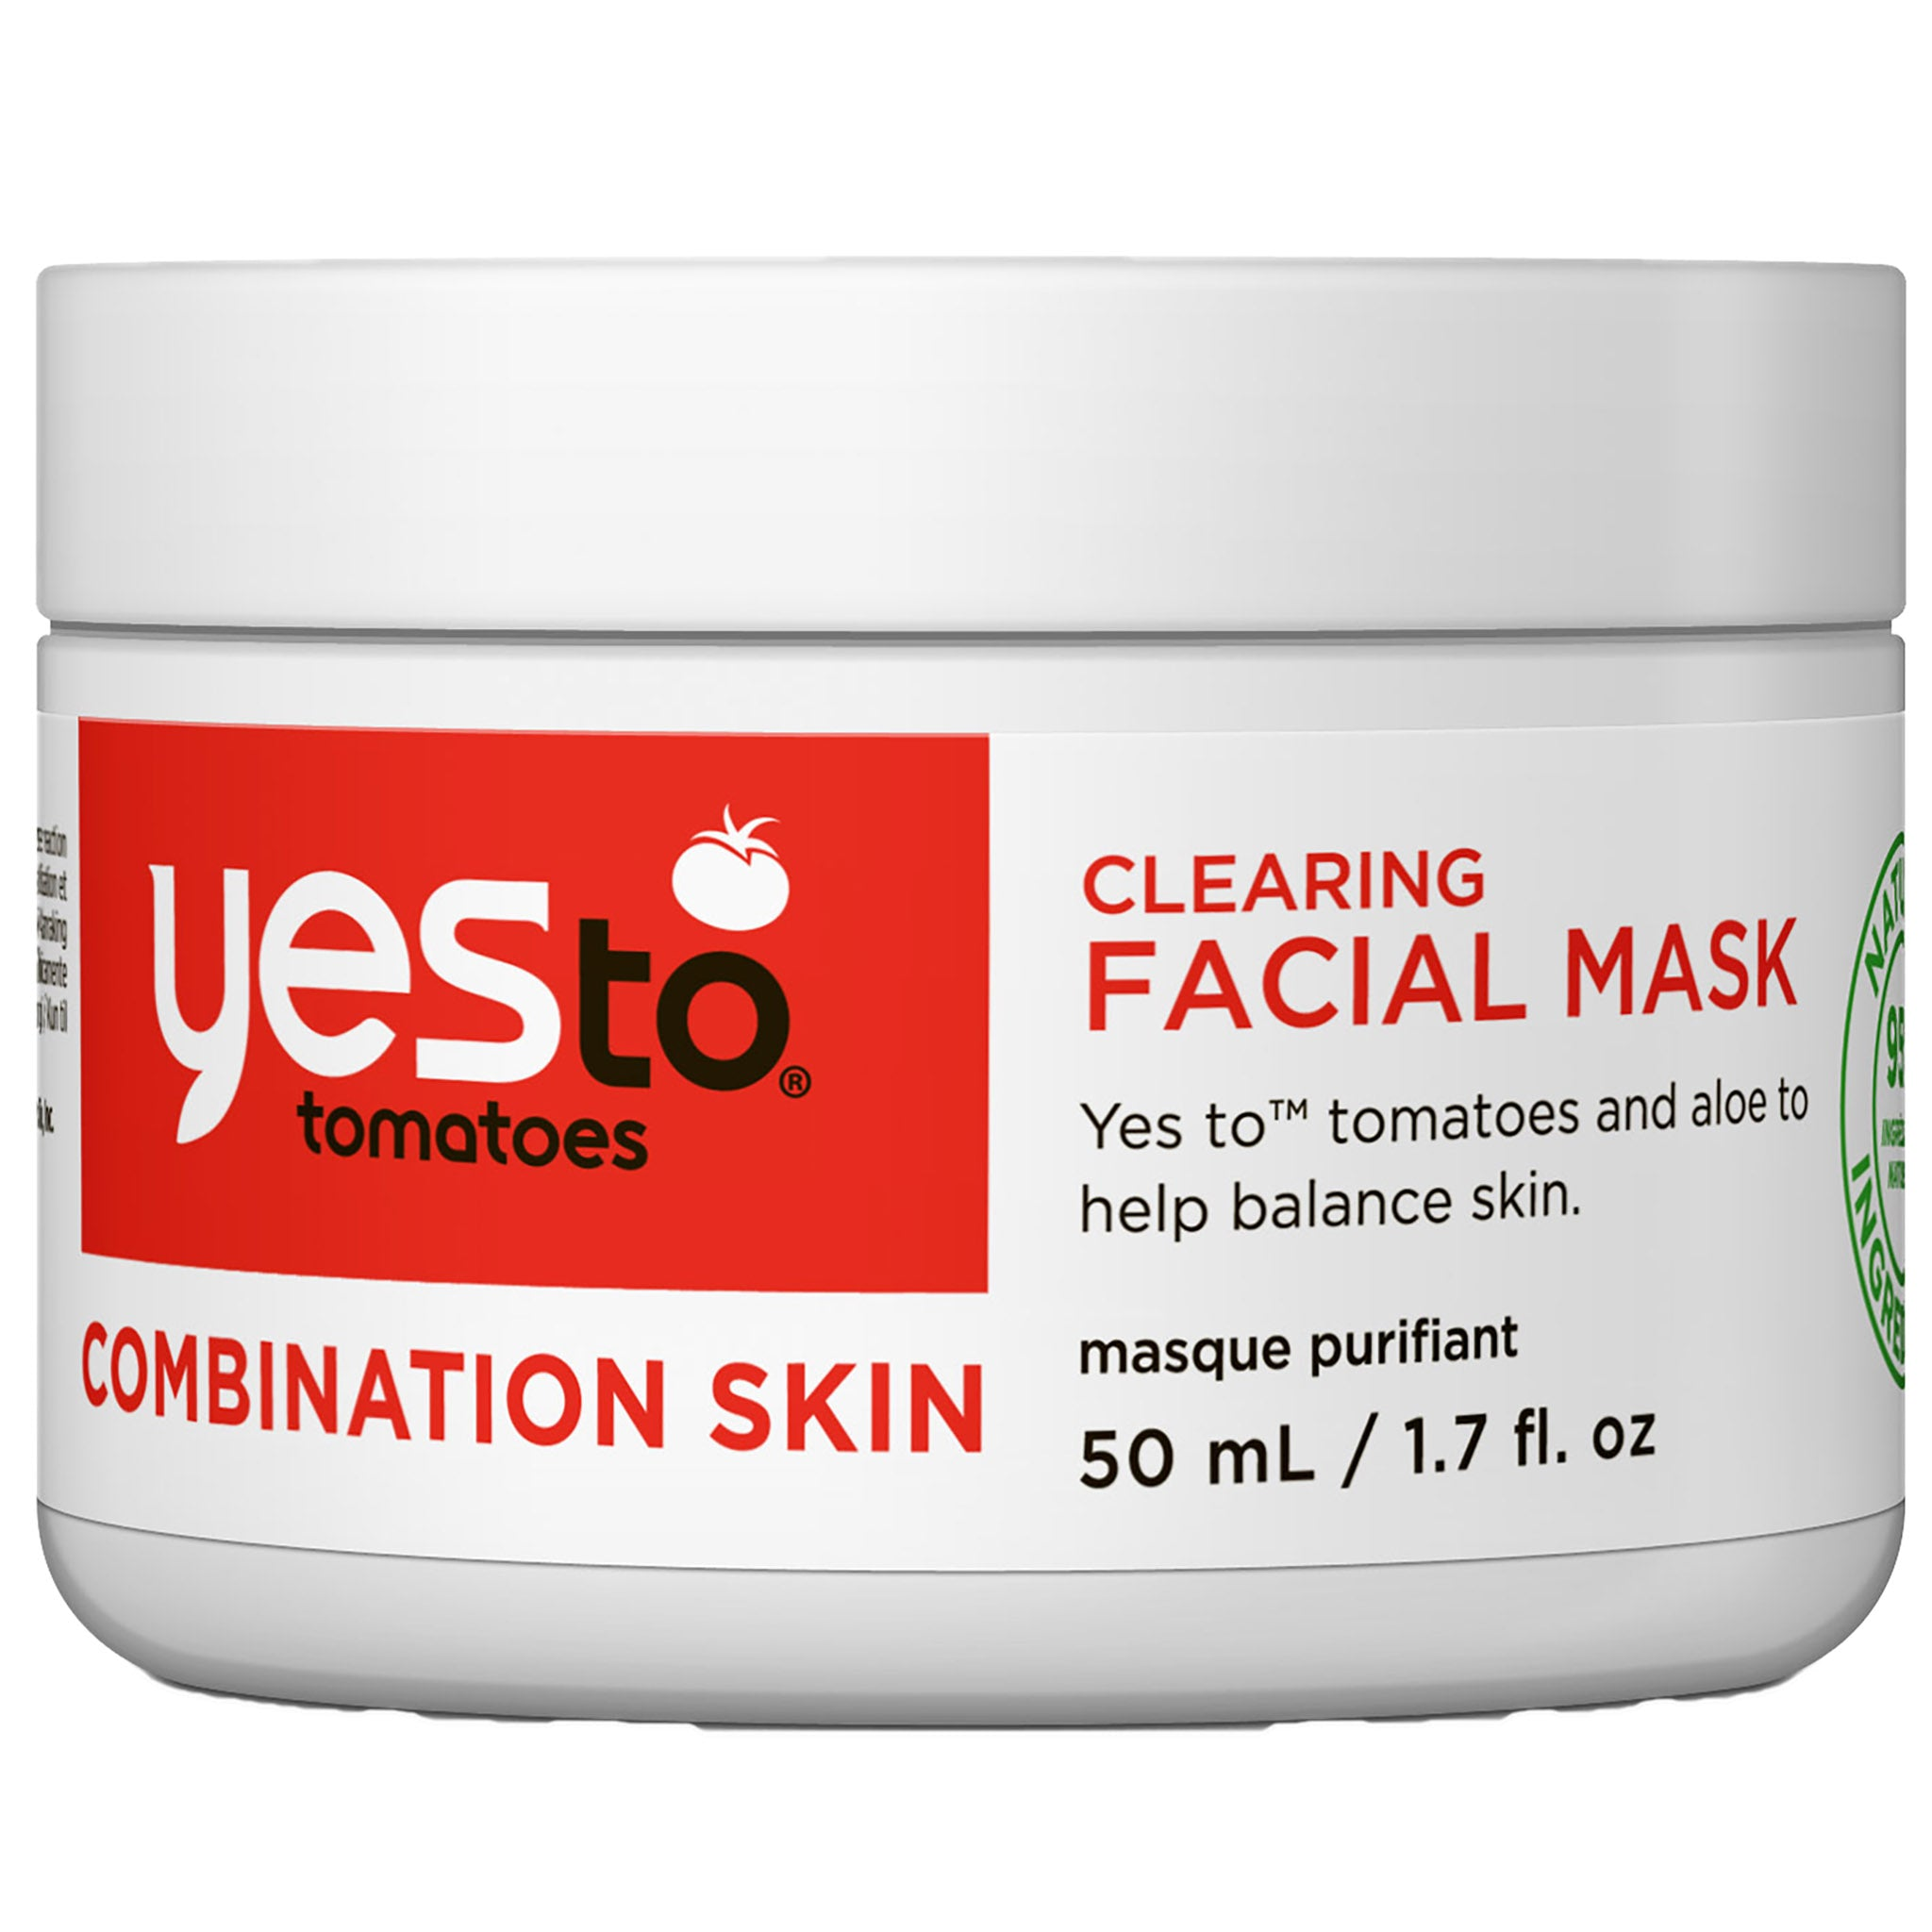 Combination Skin Clearing Facial Mask